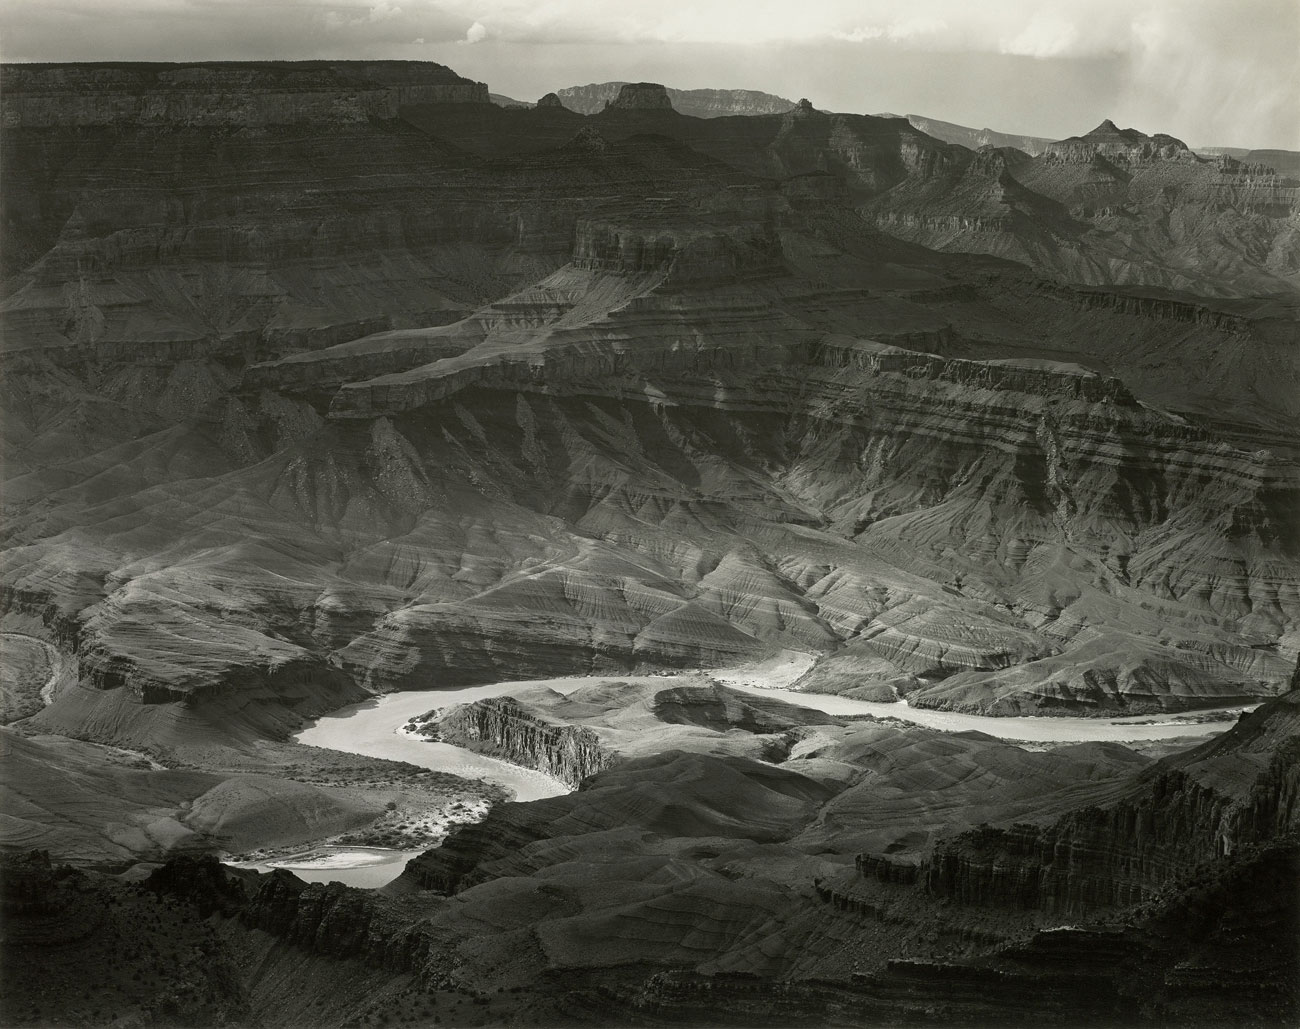 Grand Canyon, Arizona, 1941 © Edward Weston Histoire de la photographie de paysage